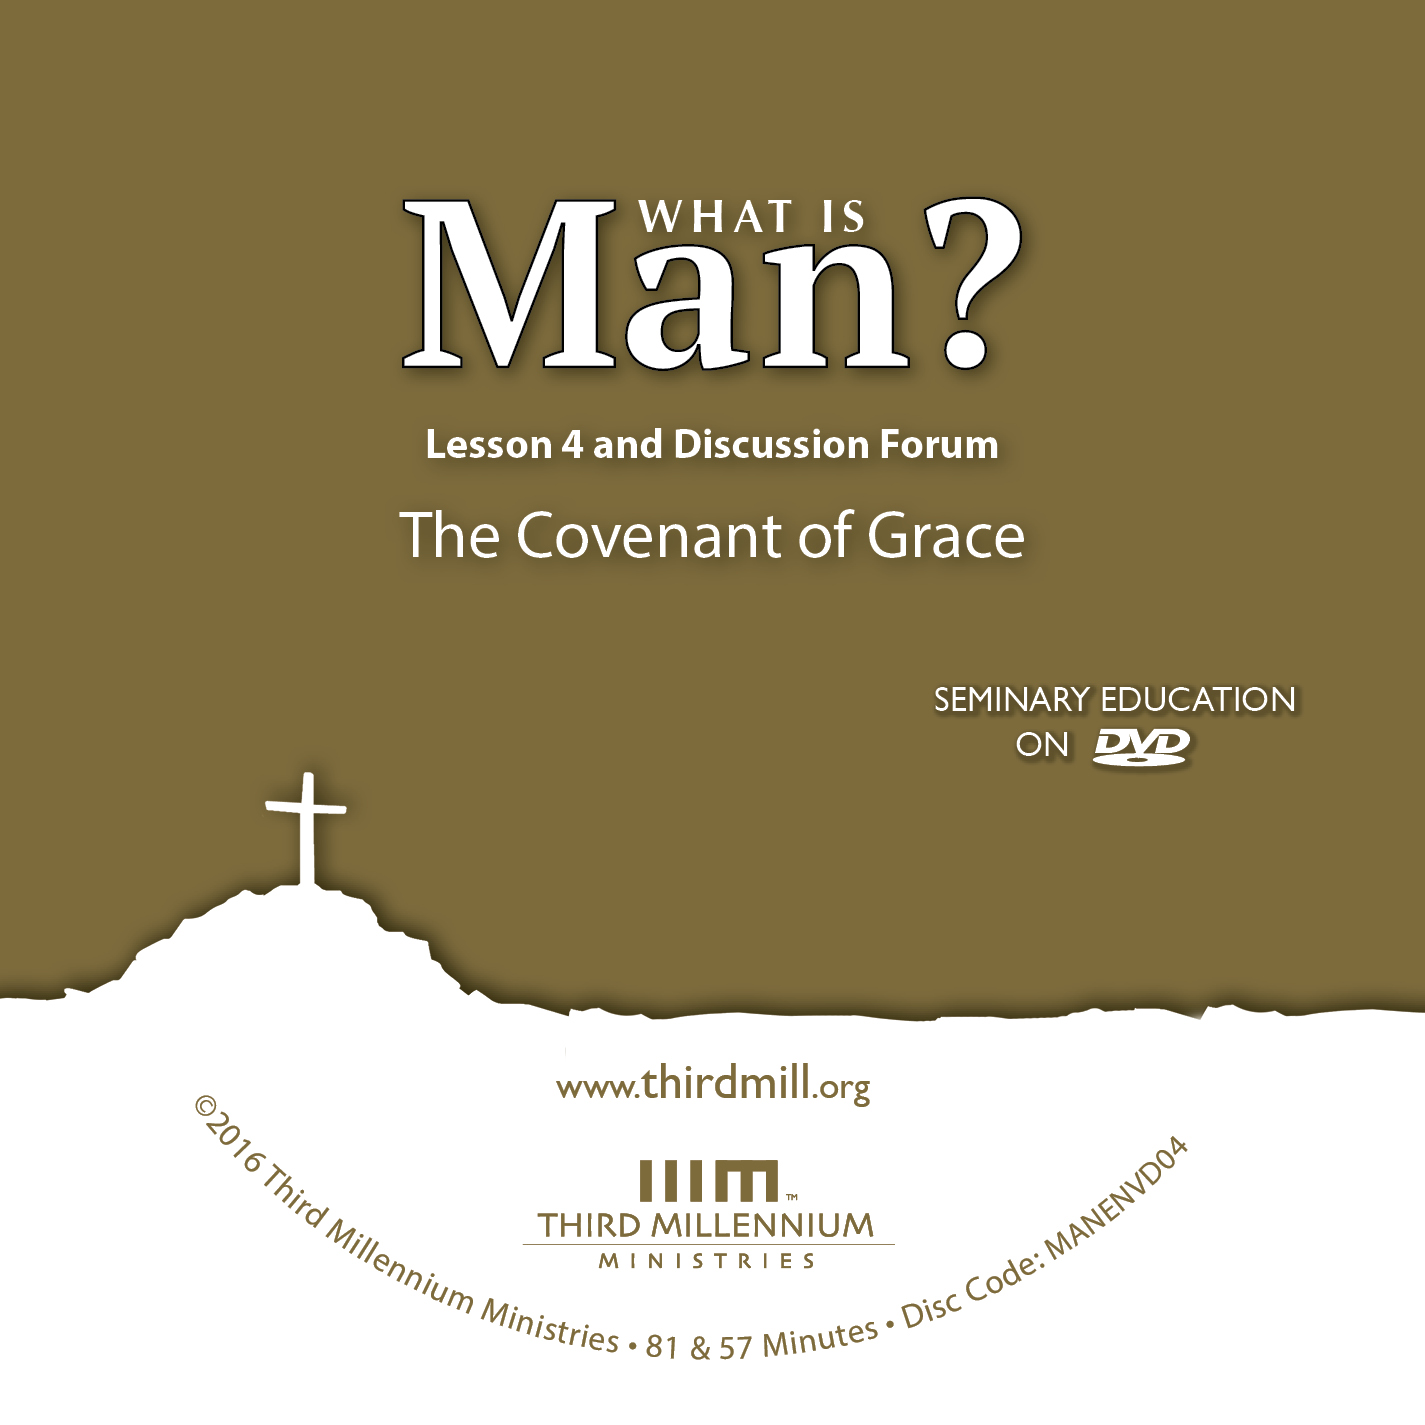 What is Man?: The Covenant of Grace (medium definition audio)